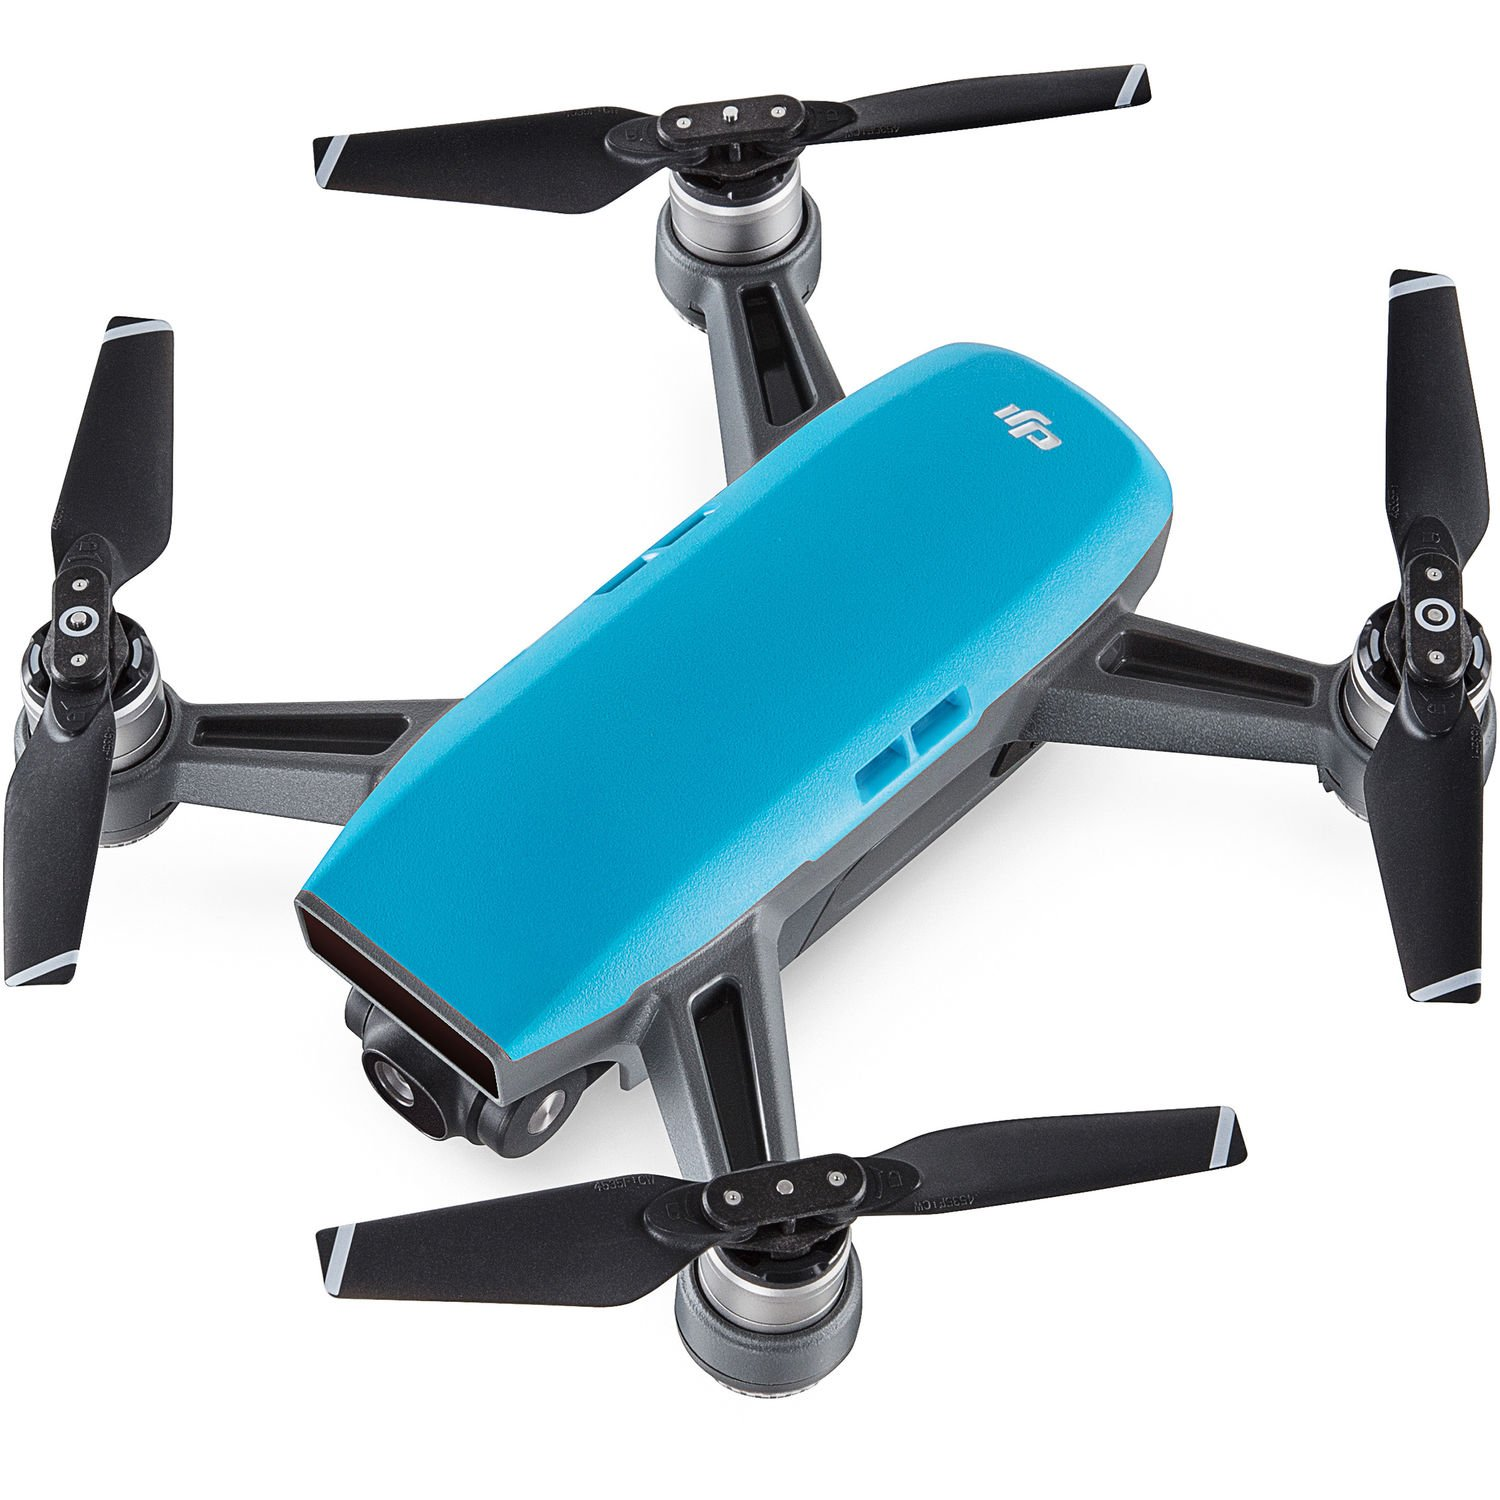 DJI Spark Sky Blue version